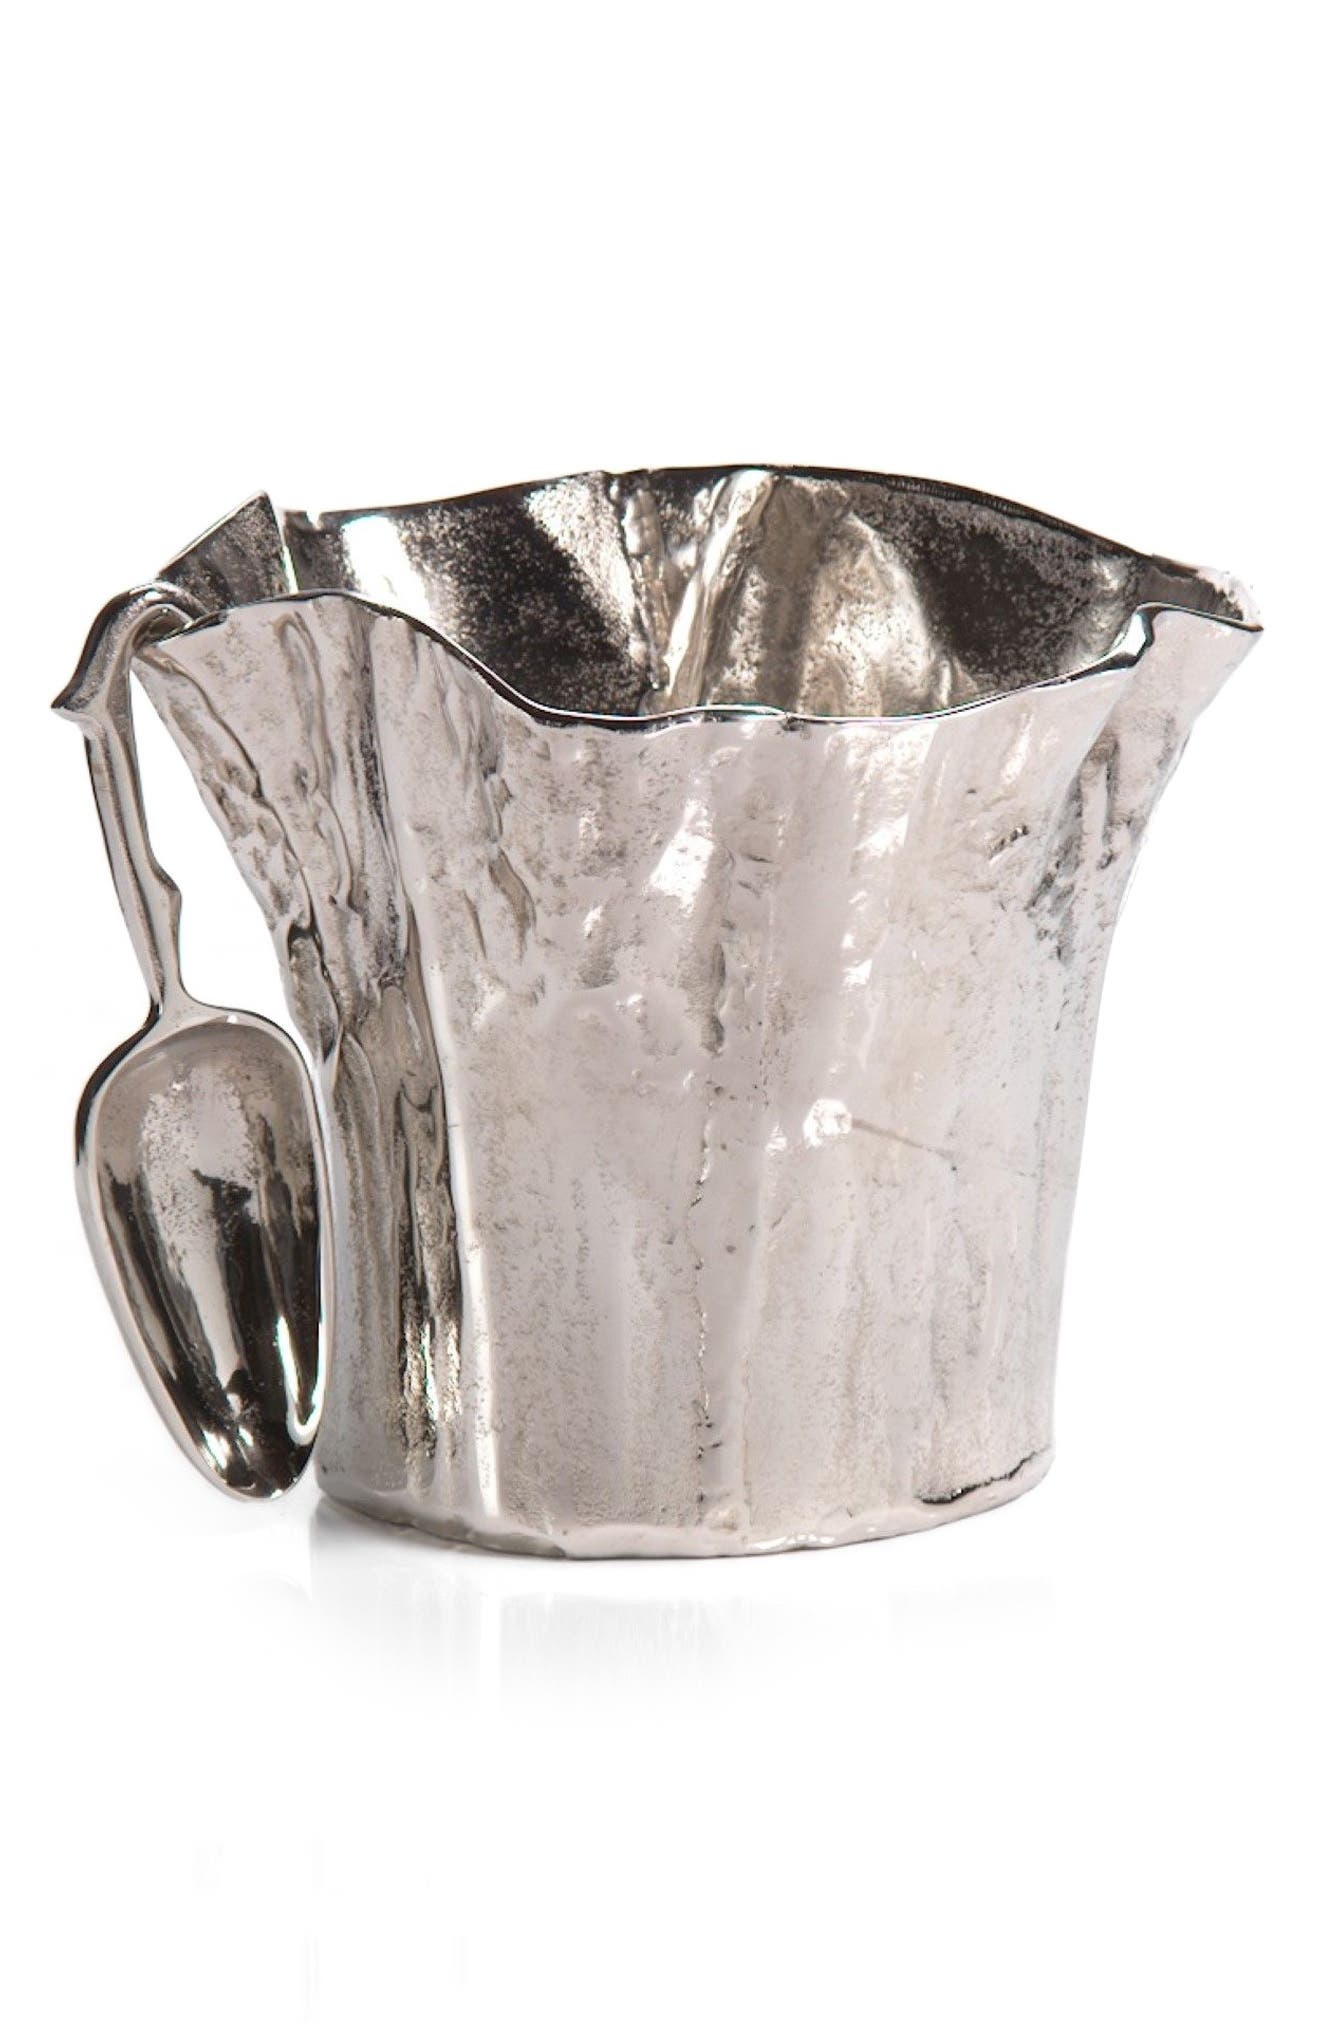 Main Image - Zodax Cado Ice Bucket & Ice Scoop